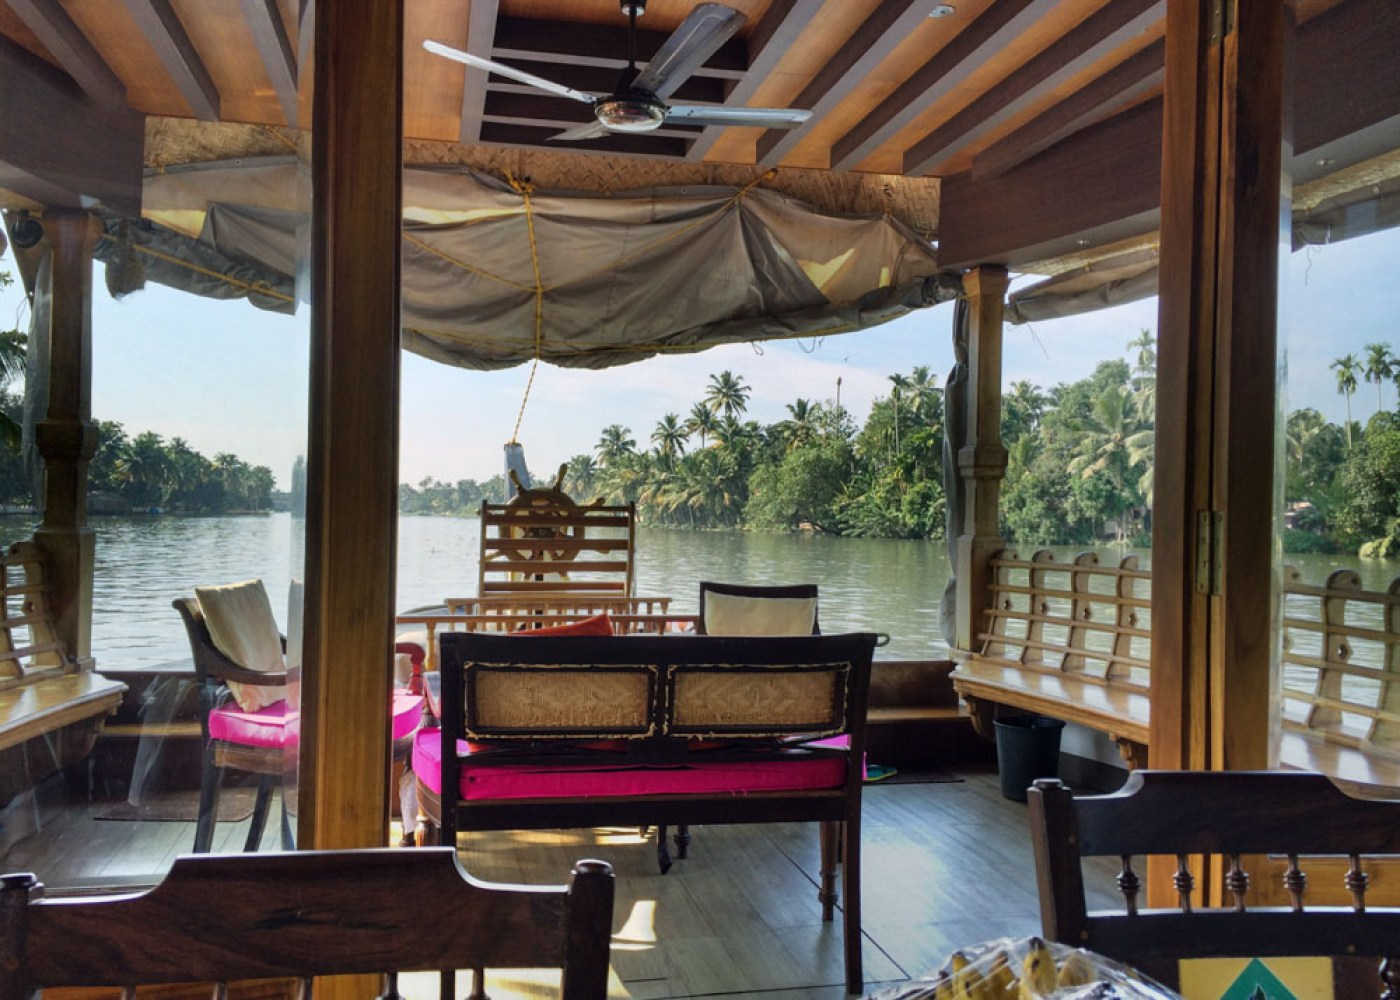 Attention to detail made this the best Kerala Houseboat